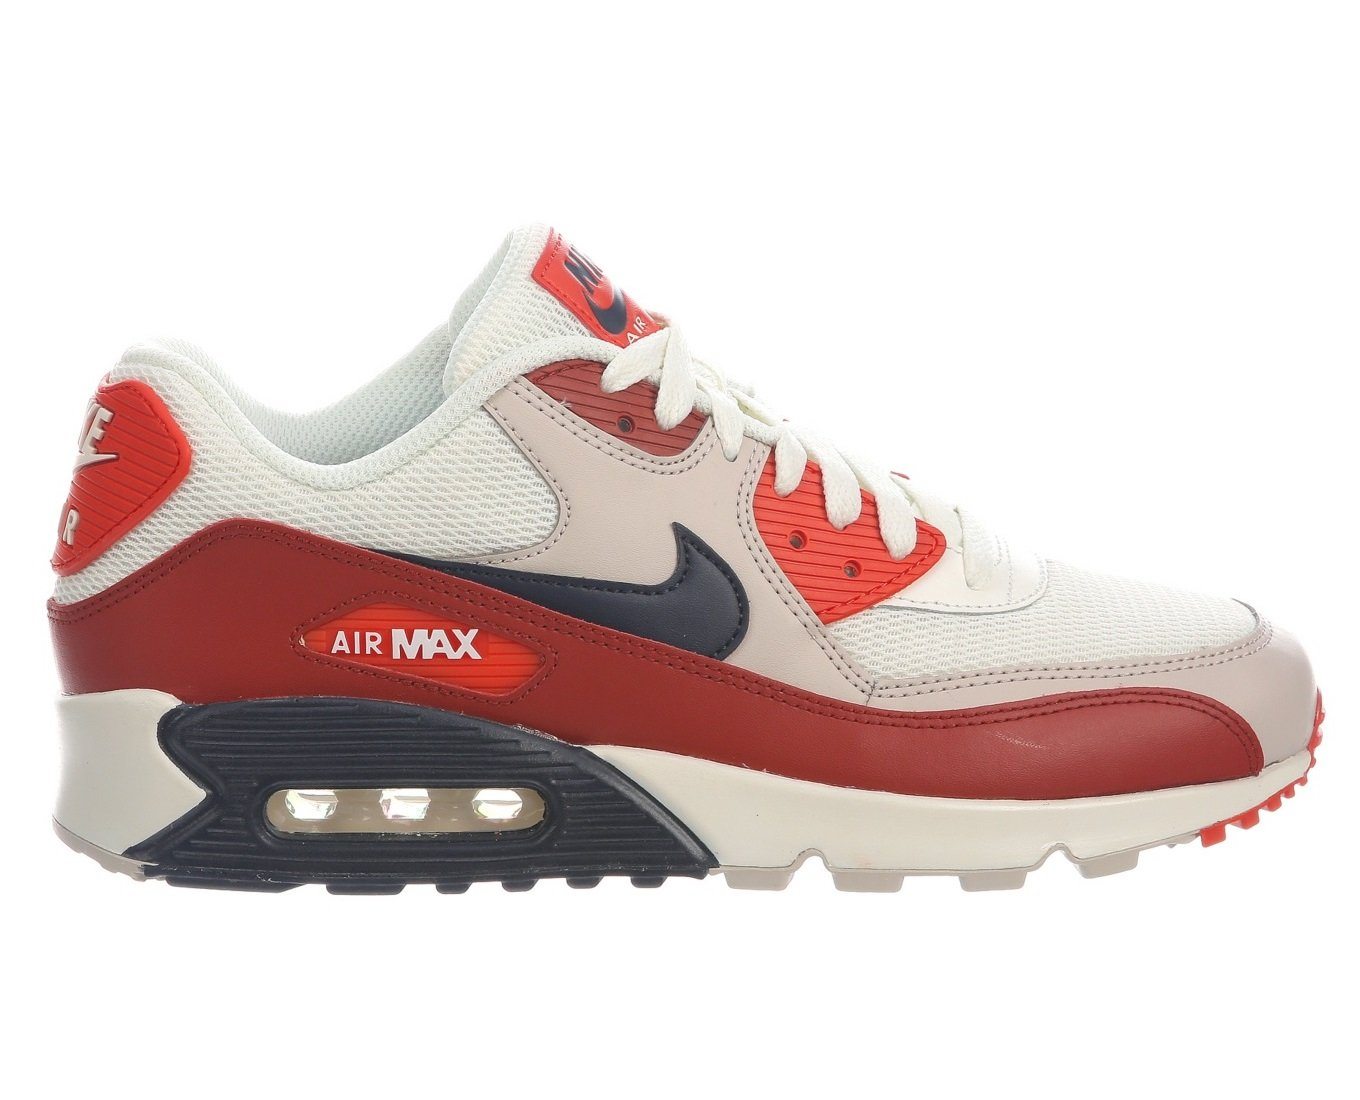 online retailer 22b22 8cc4f Galleon - NIKE Air Max 90 Essential Mens s Shoes Mars Stone Obsidian  Aj1285-600 (7.5 D(M) US)